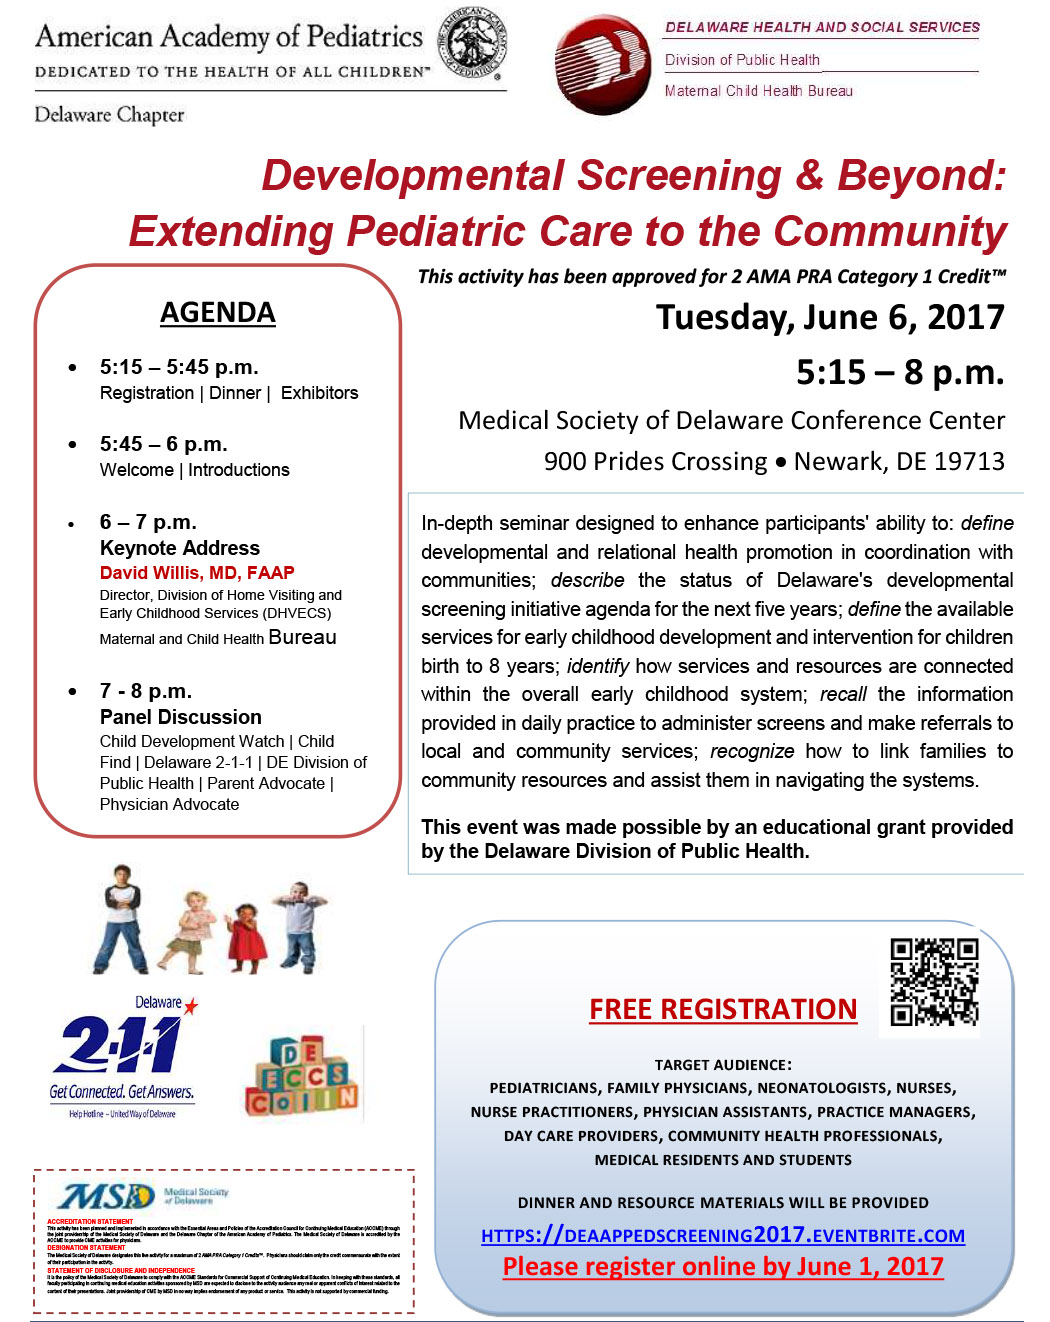 Developmental Screening & Beyond: Extending Pediatric Care to the Community